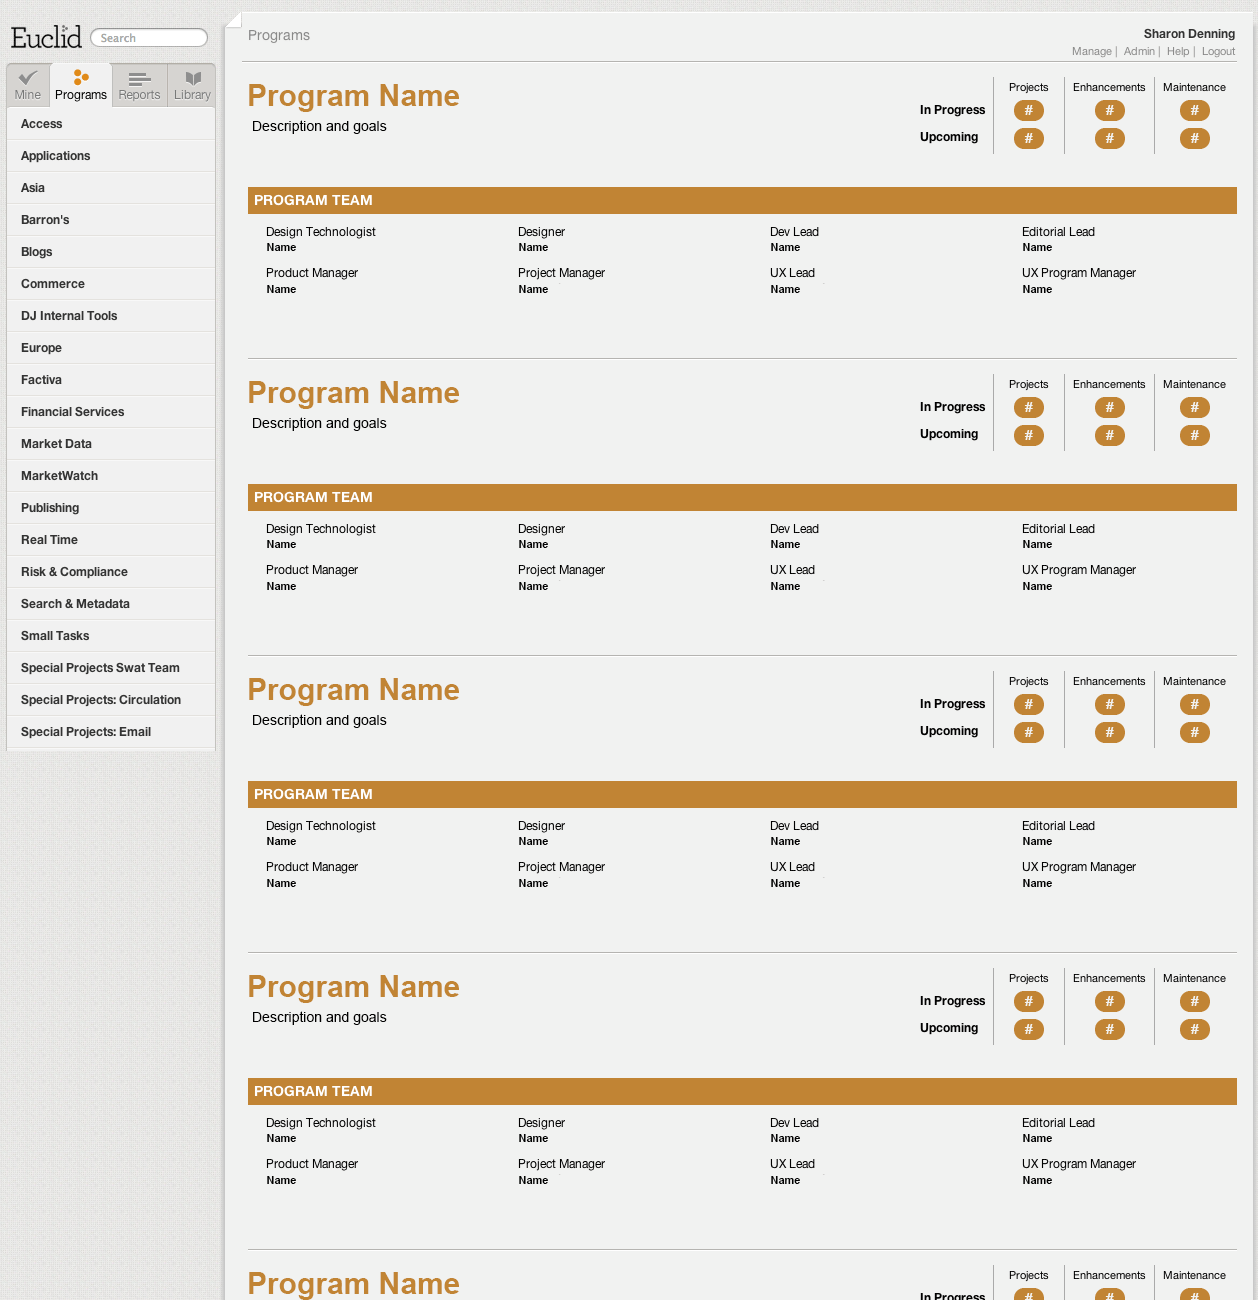 a_3_f_2_Programs_overview